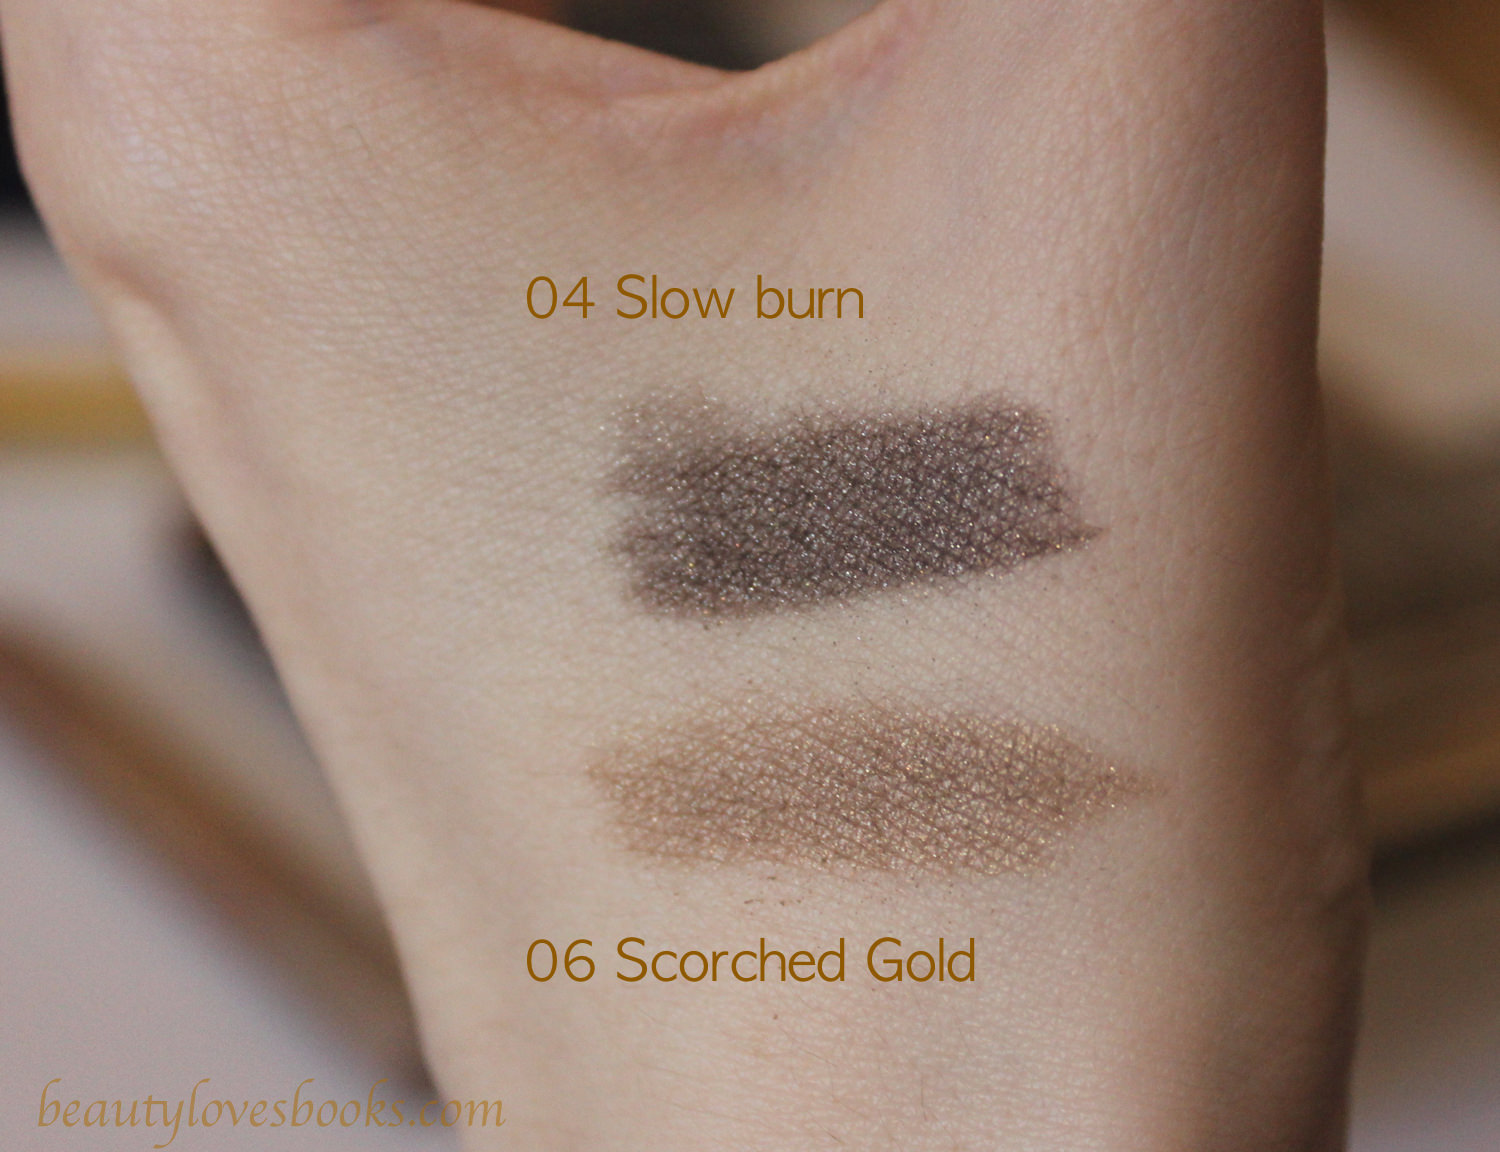 Estée Lauder Magic Smoky Powder Shadow sticks in 04 Slow Burn/ 06 Scorched gold swatches